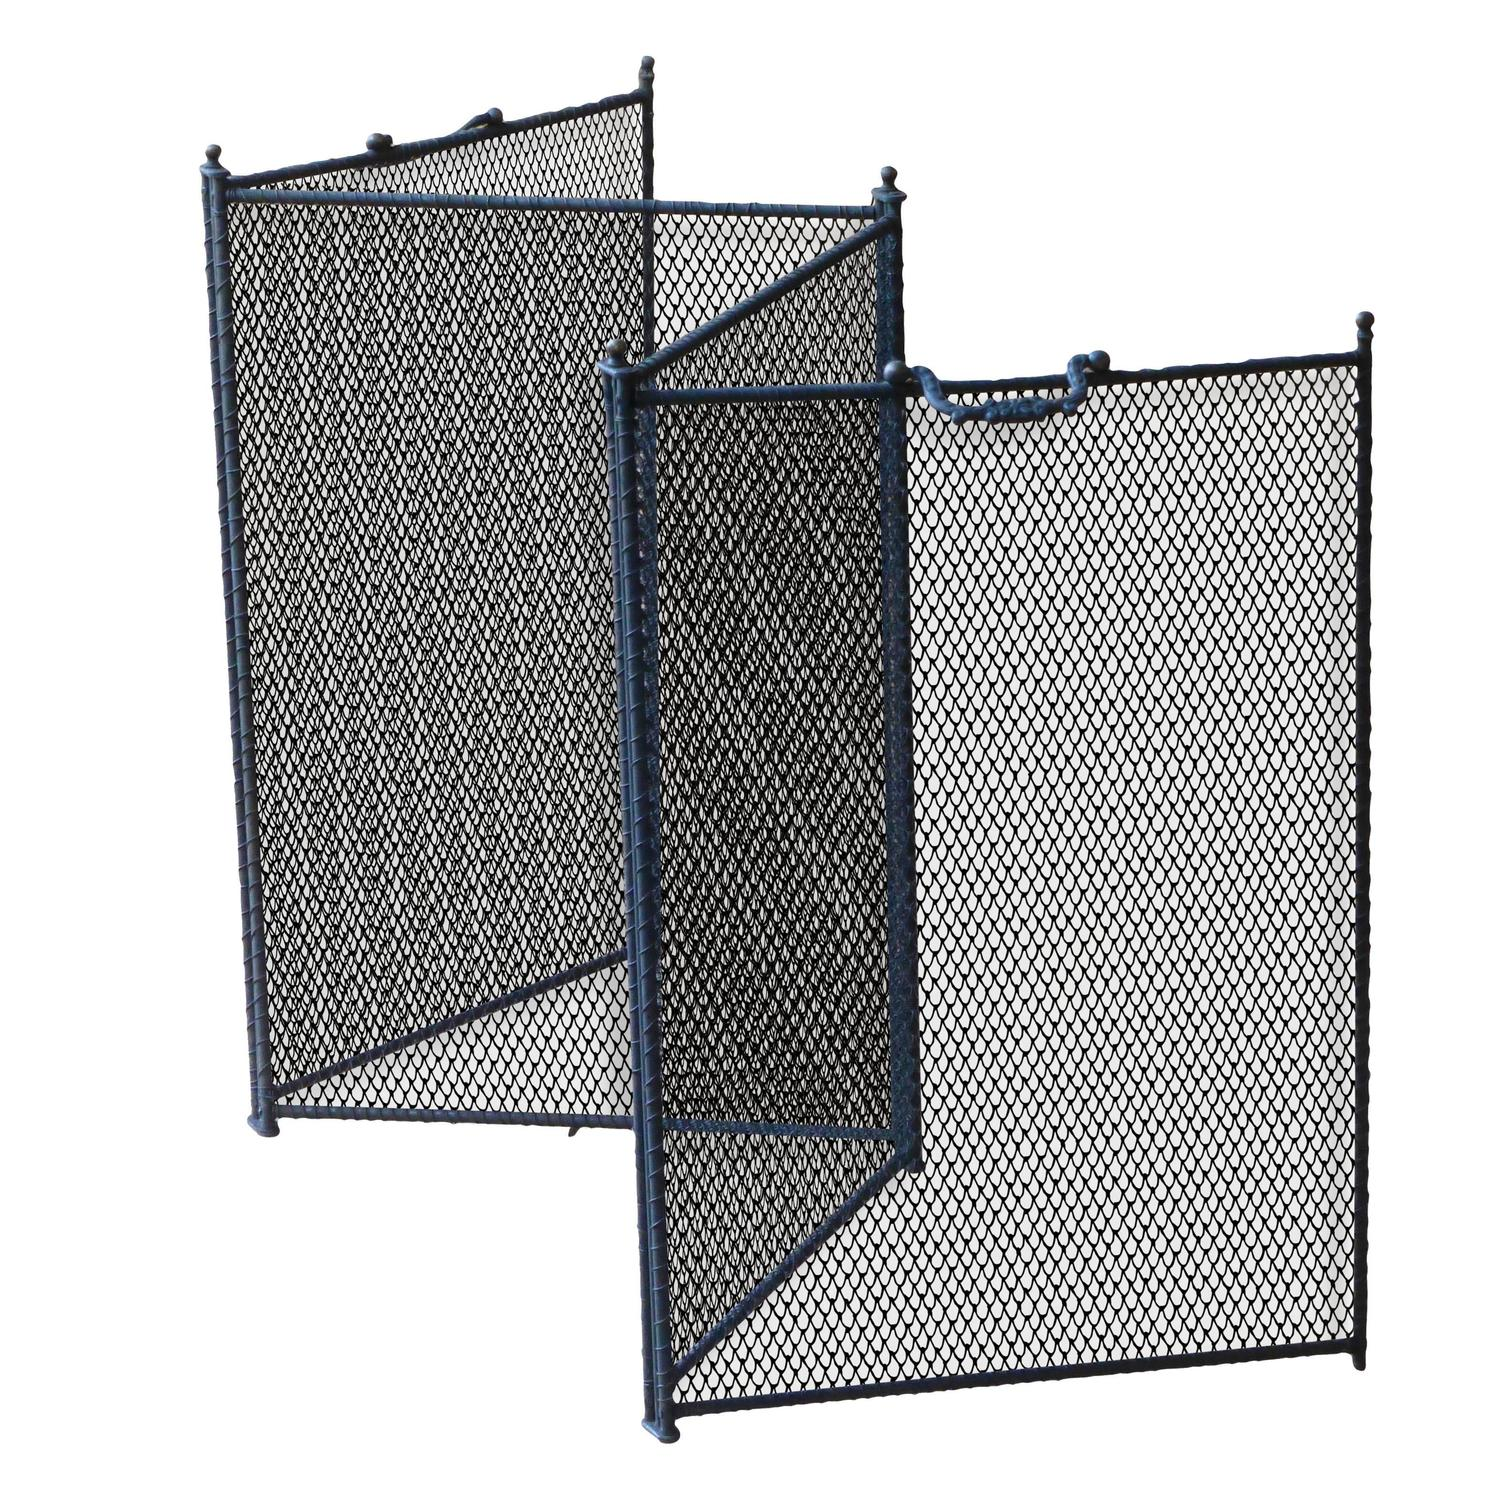 iron french fire screen new handmade for sale at 1stdibs. Black Bedroom Furniture Sets. Home Design Ideas